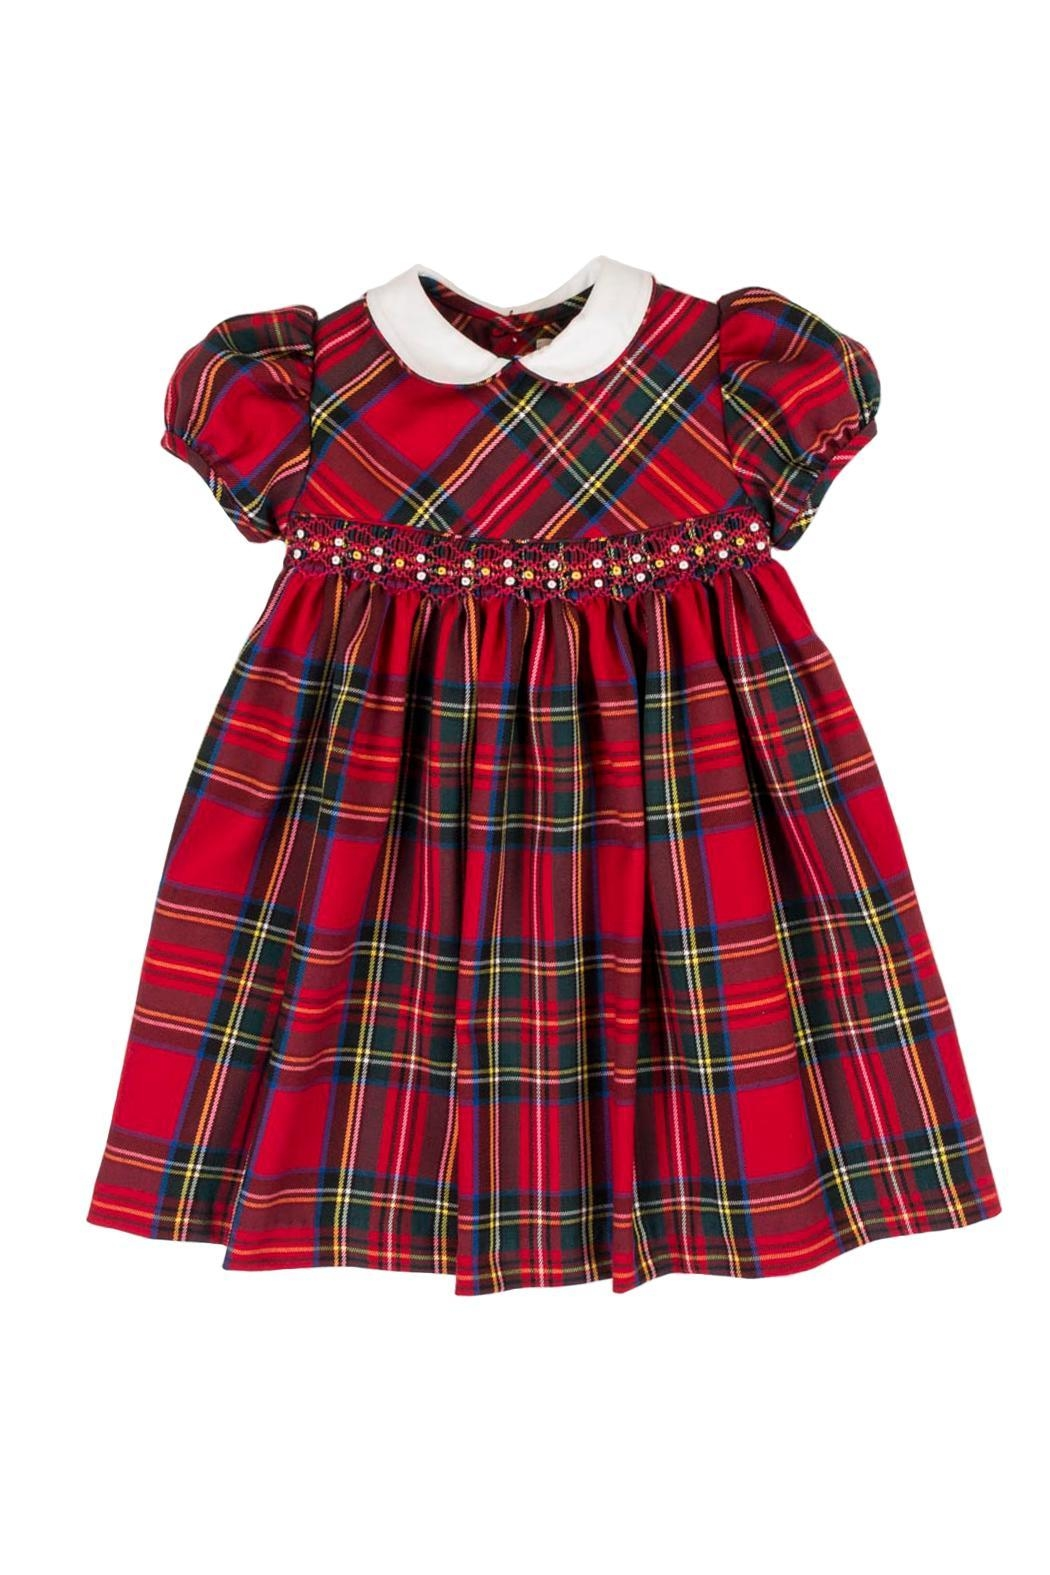 Malvi & Co. Red Tartan Dress. - Main Image